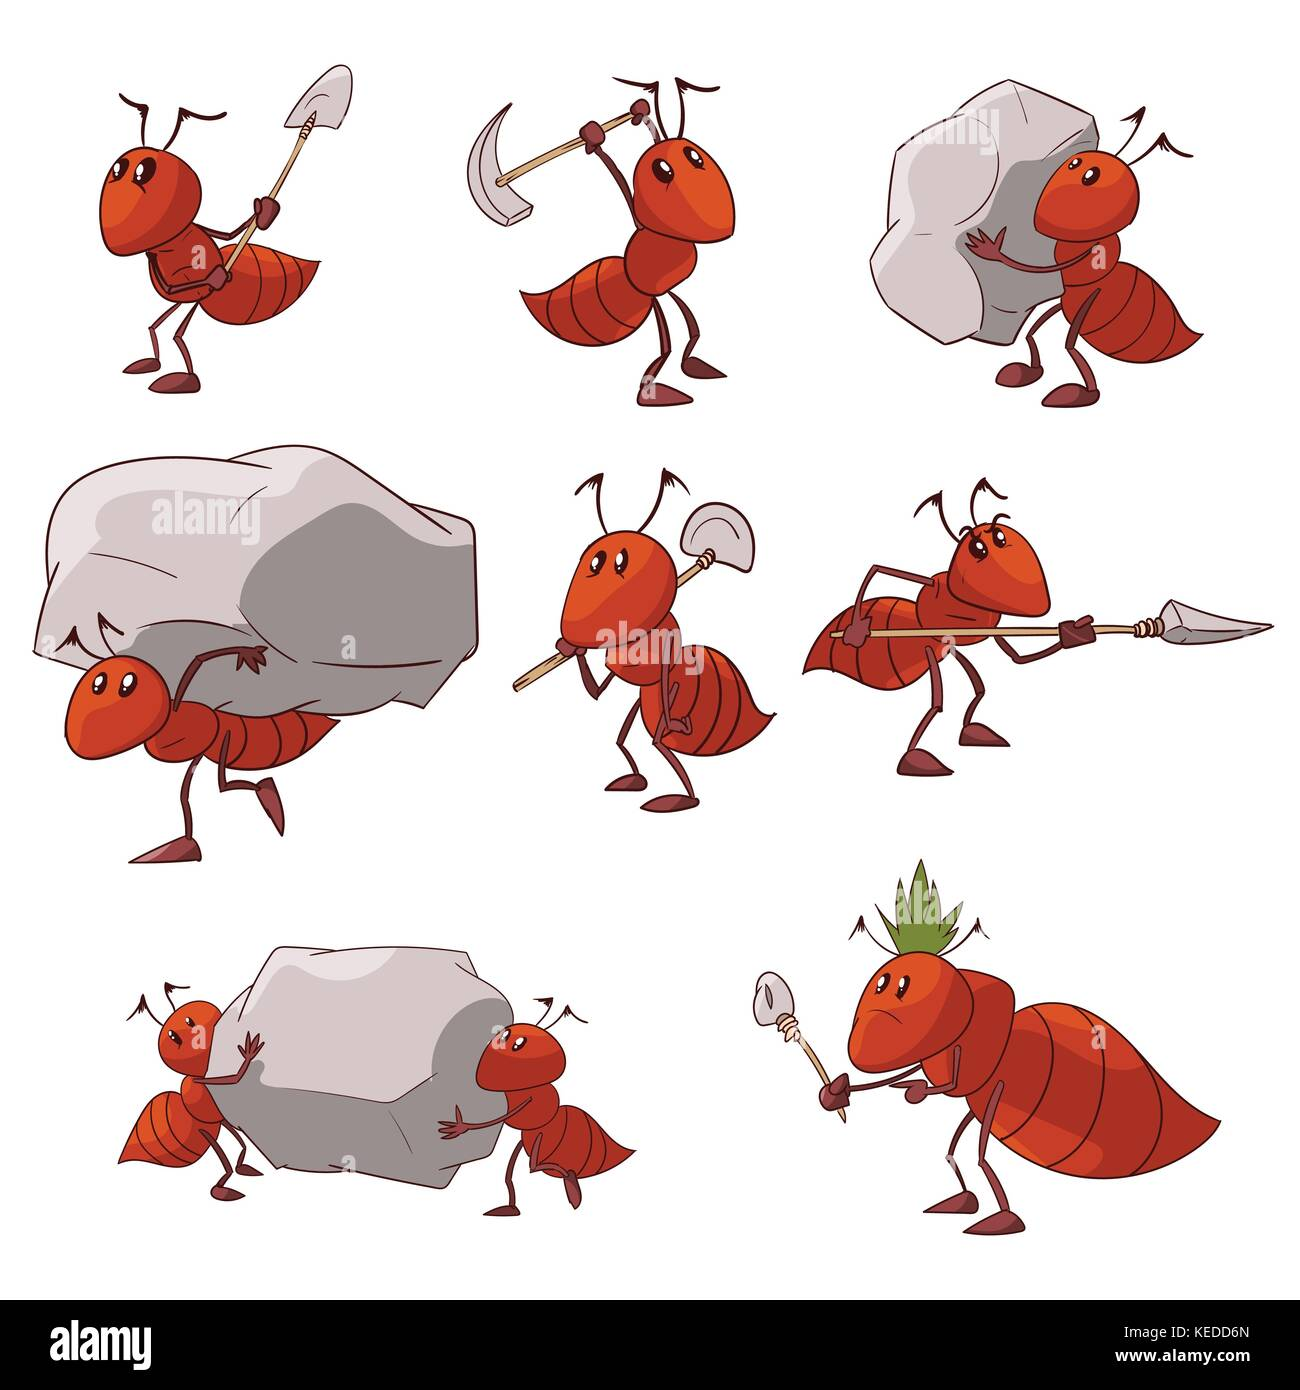 Collection of colorful vector illustrations of cartoon red ant colony - Stock Image